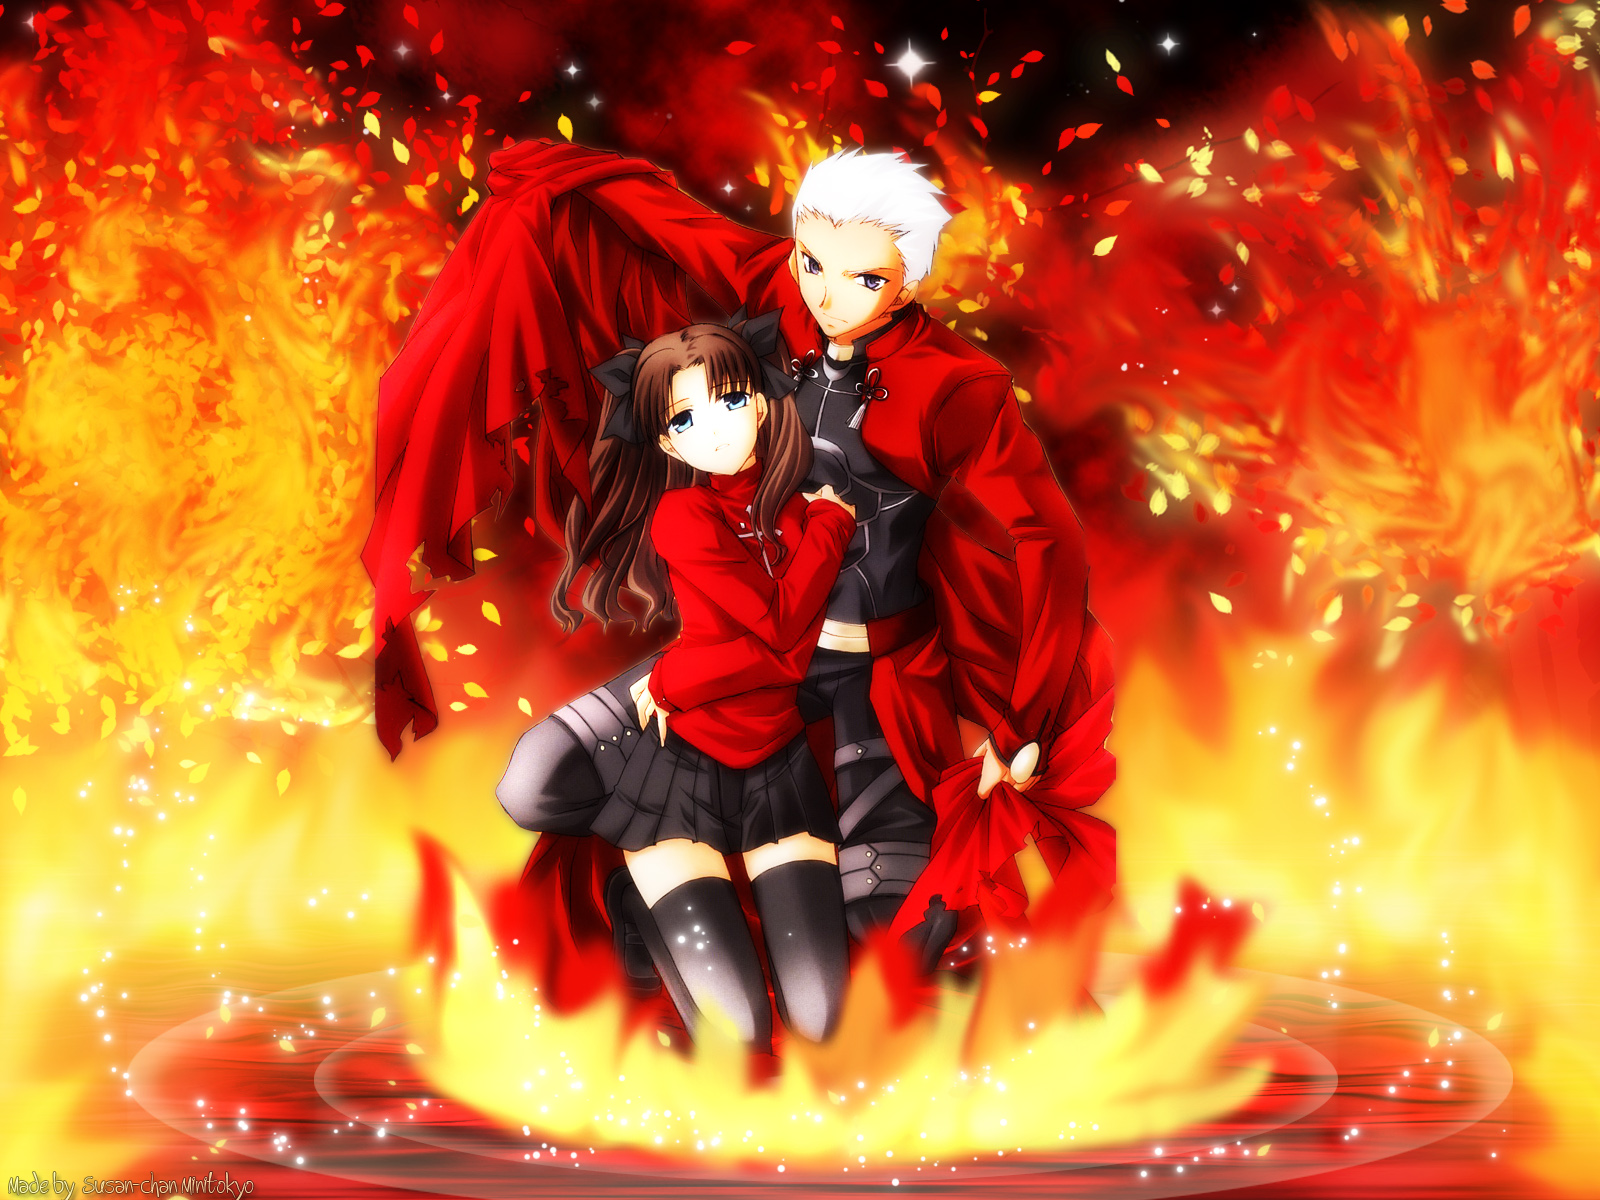 Anime - Fate/Stay Night  Archer (Fate/Stay Night) Rin Tohsaka Wallpaper